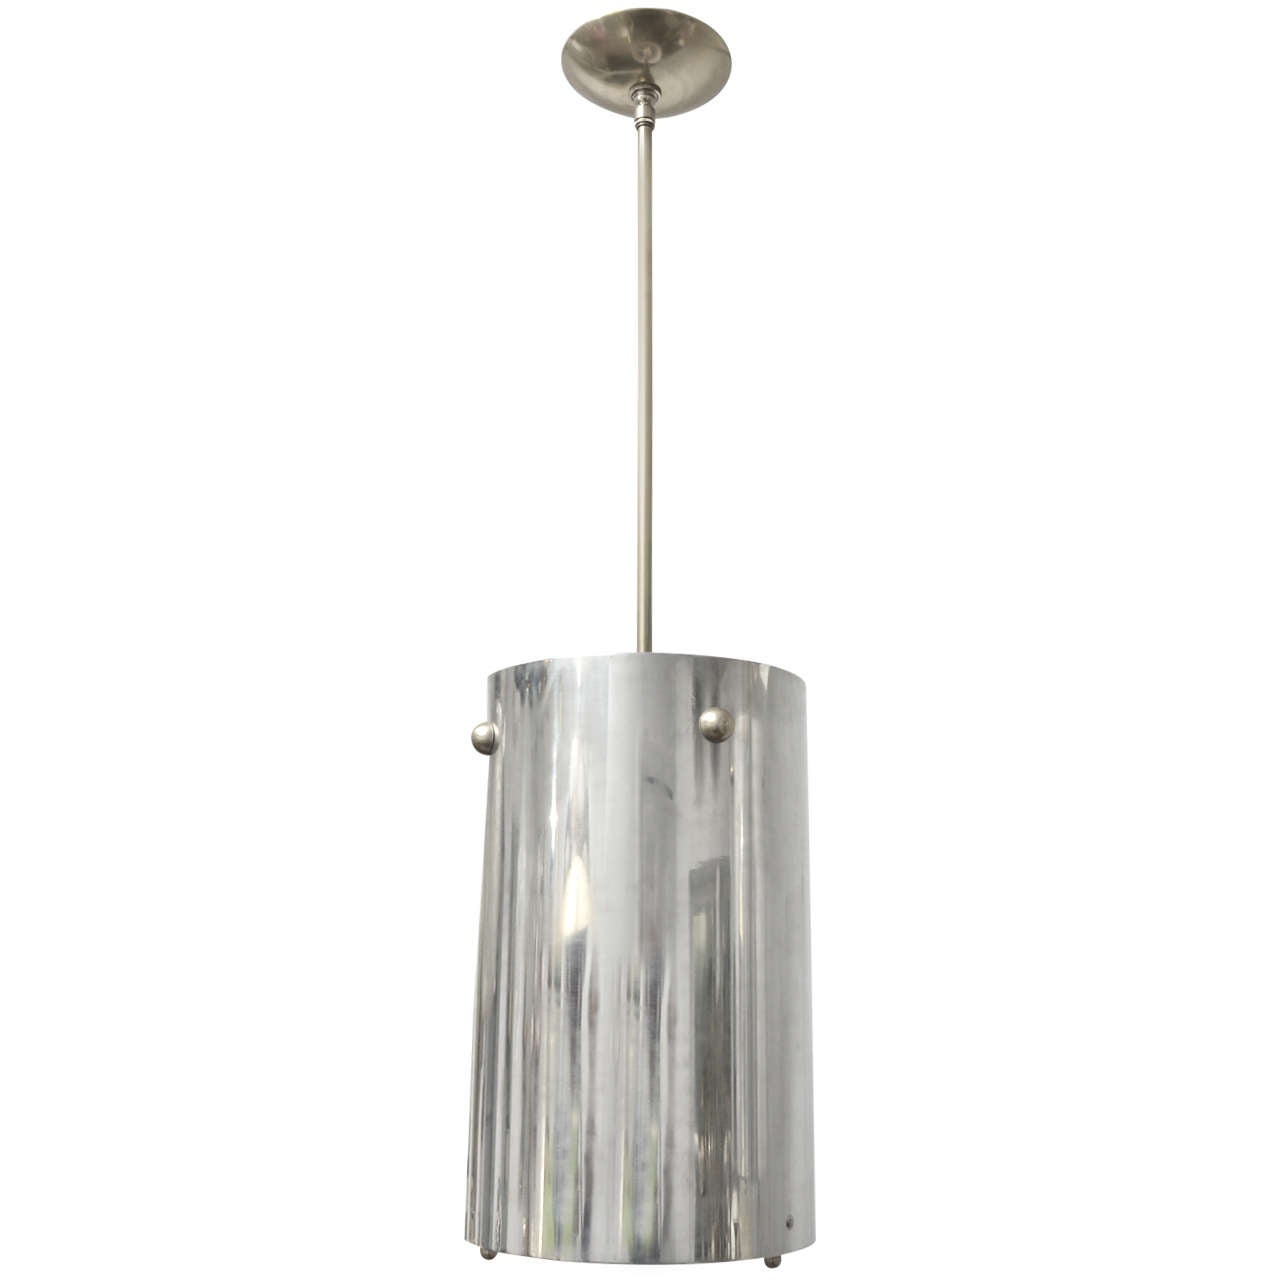 Cylindrical Chrome Pendant Ceiling Fixture with Opague Glass Shade